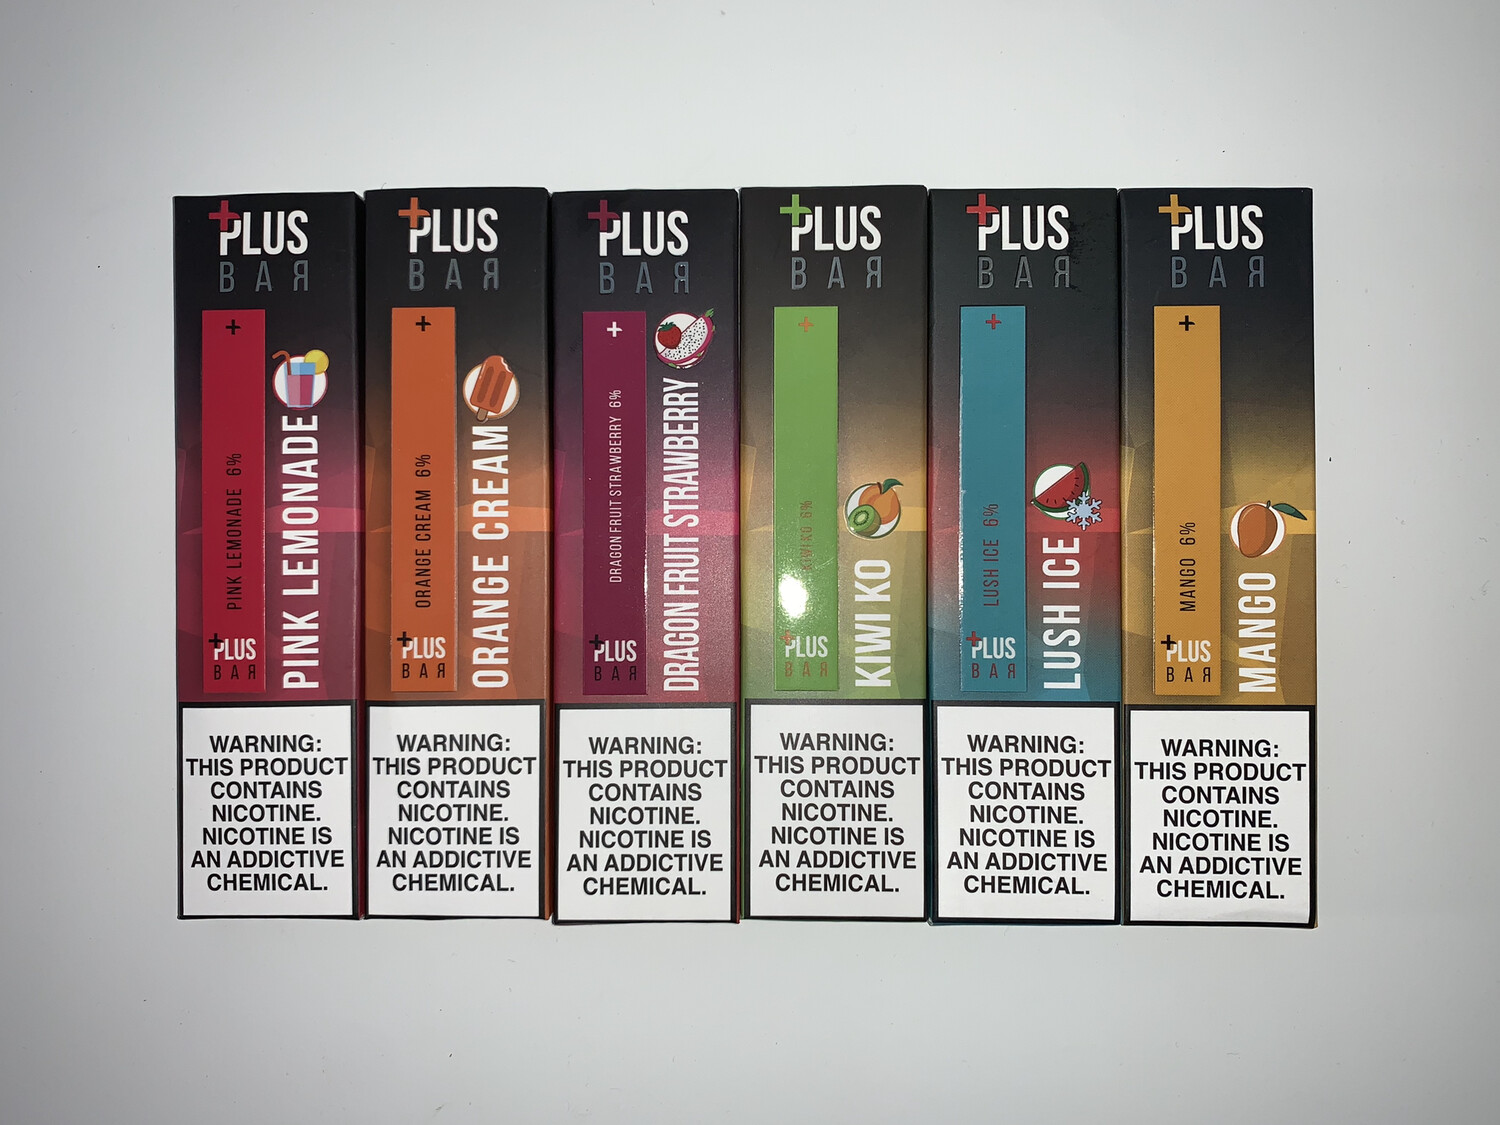 +Plus Bar Disposable Vape Pen